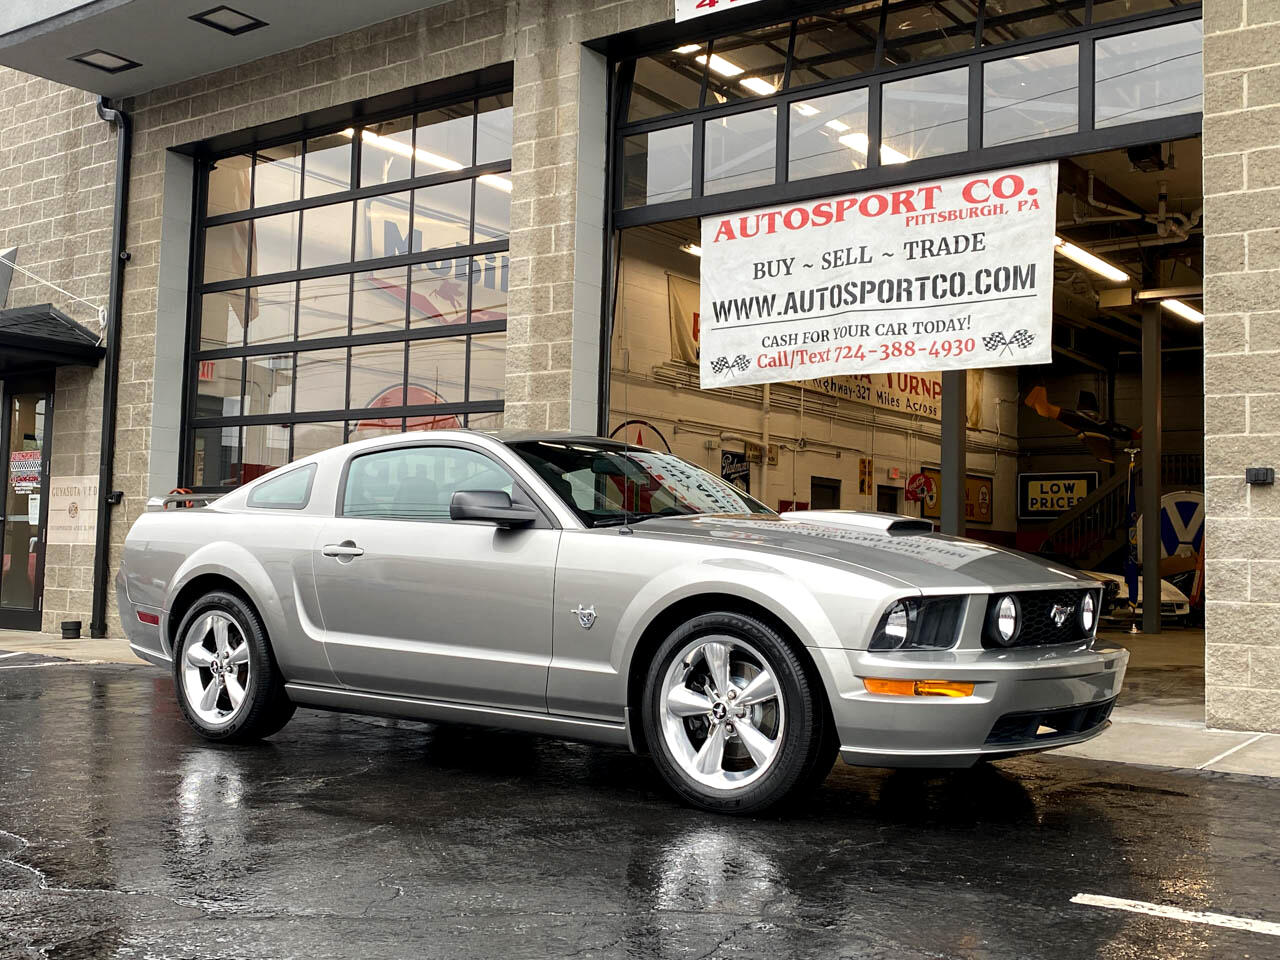 Ford Mustang GT Premium Coupe 2009